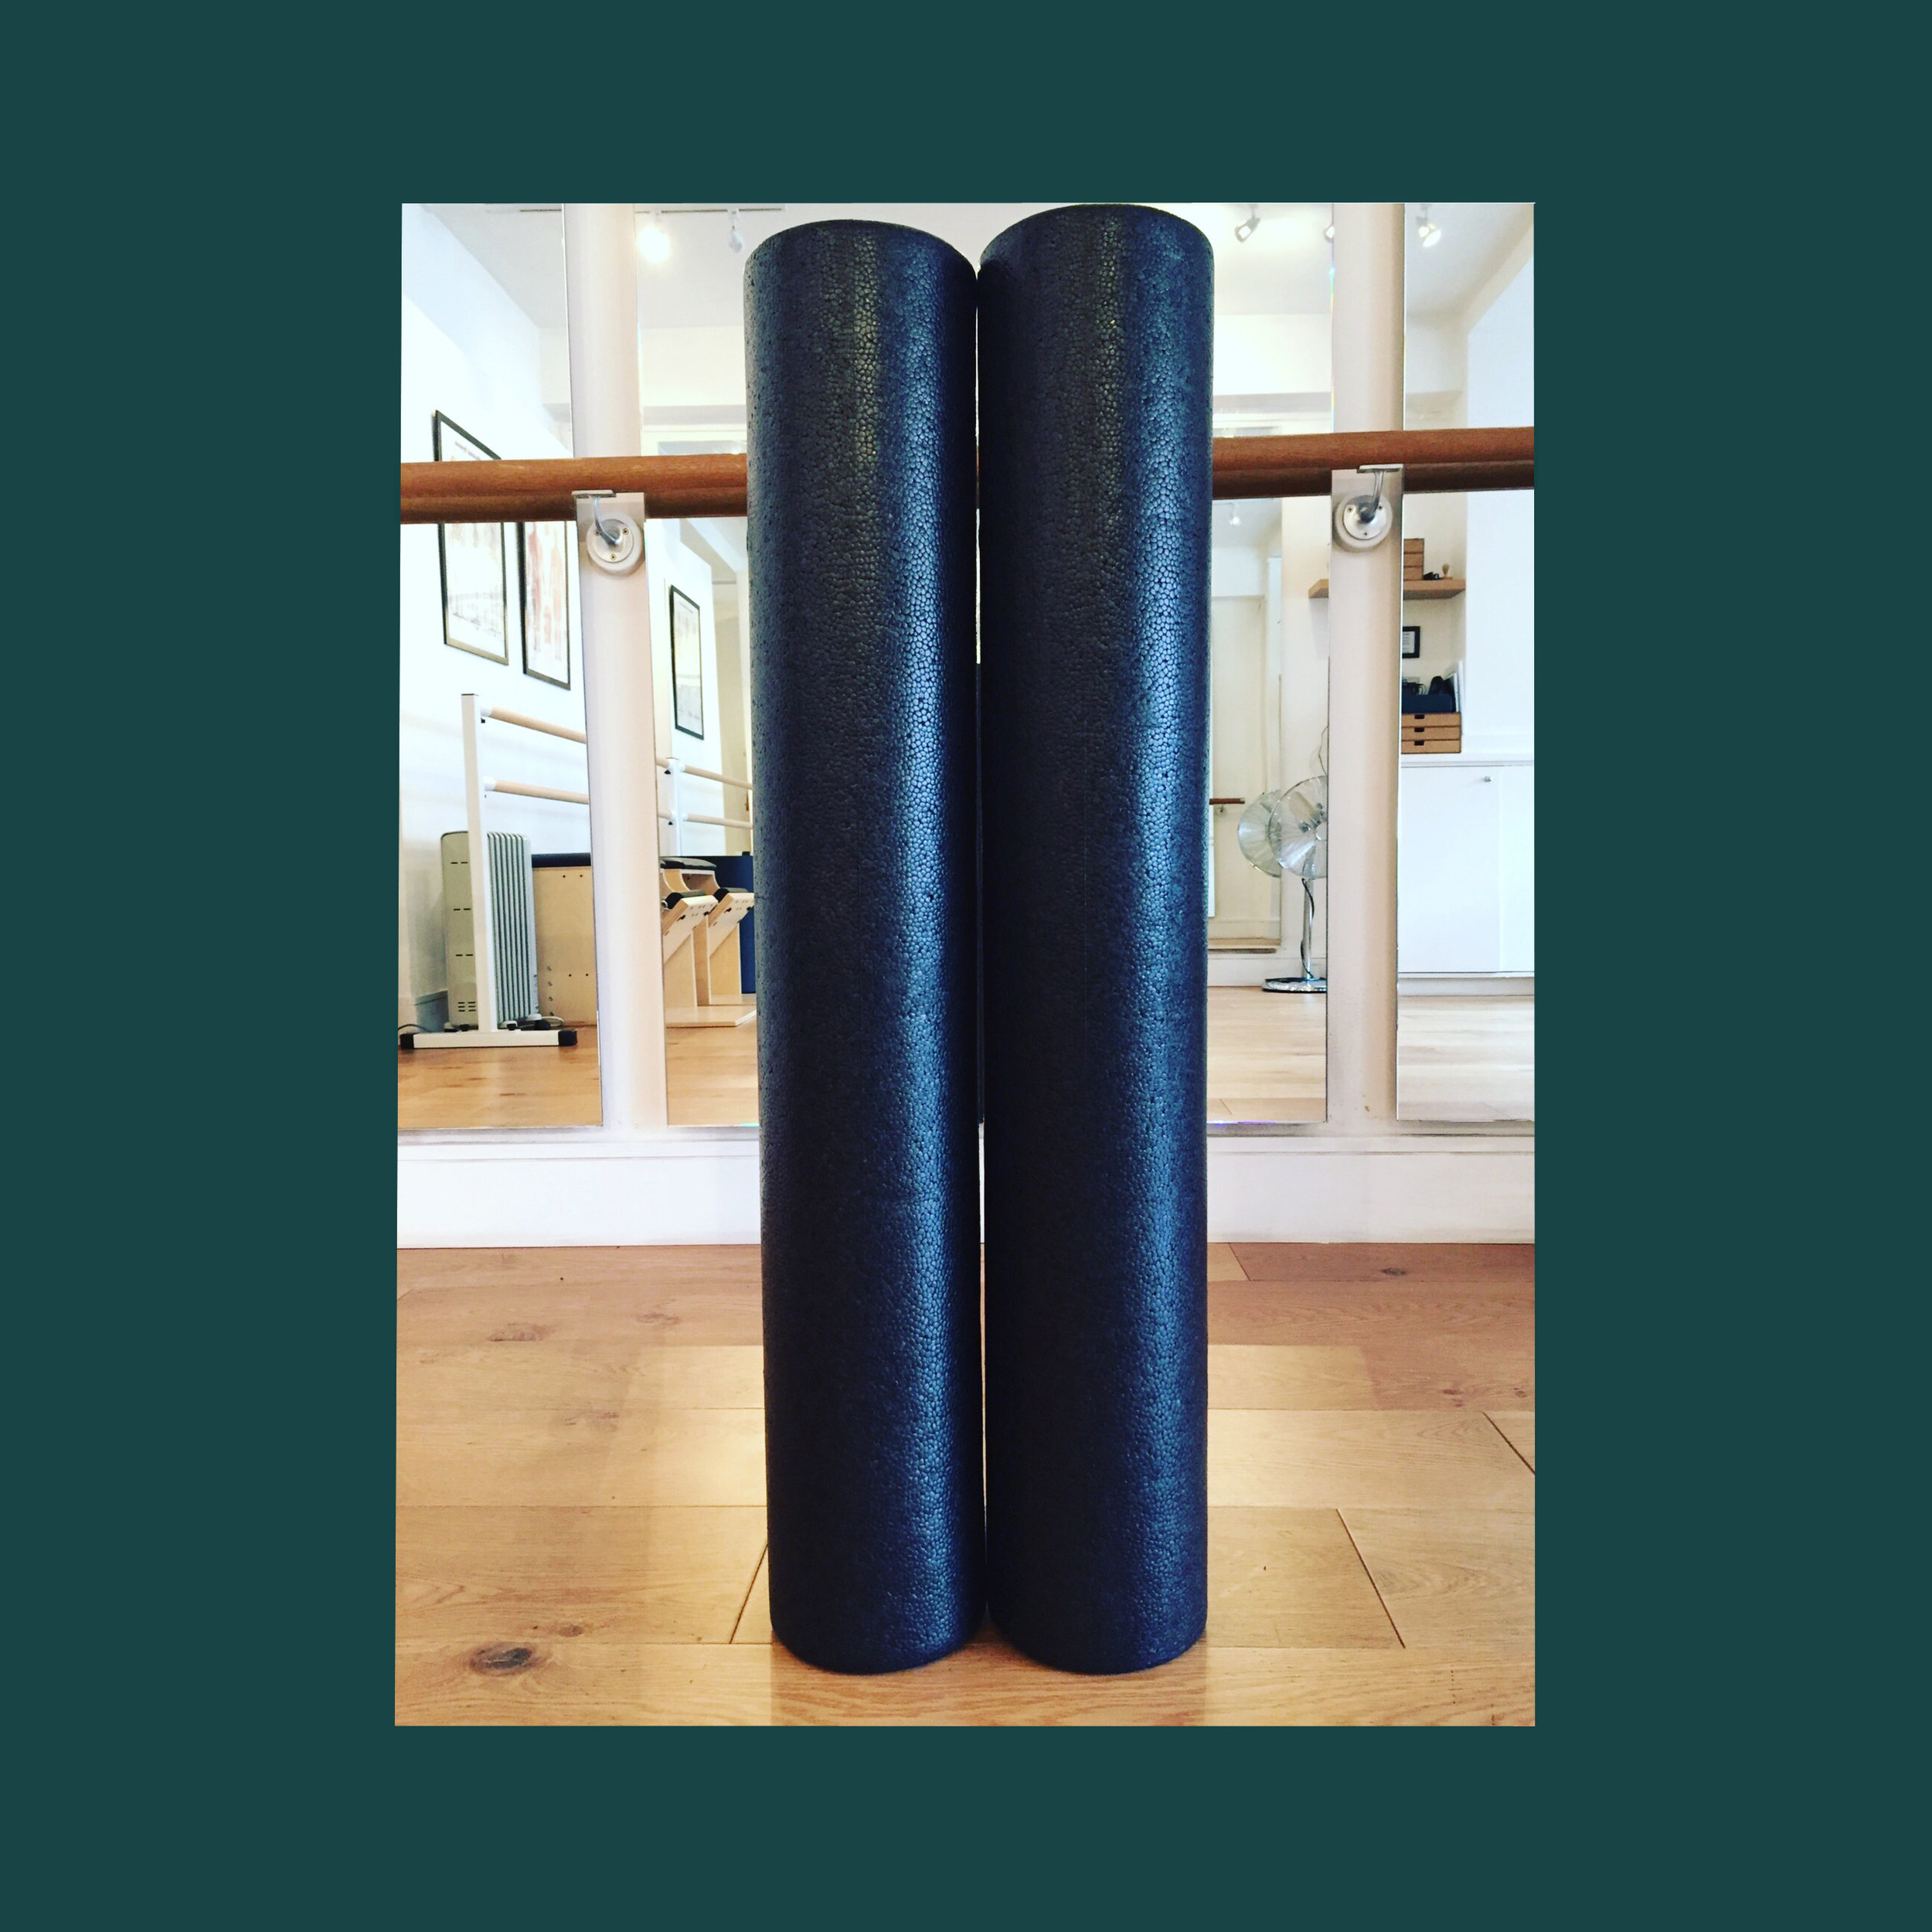 Foam Roller   Balance, align and unwind on a foam roller...     £30.00